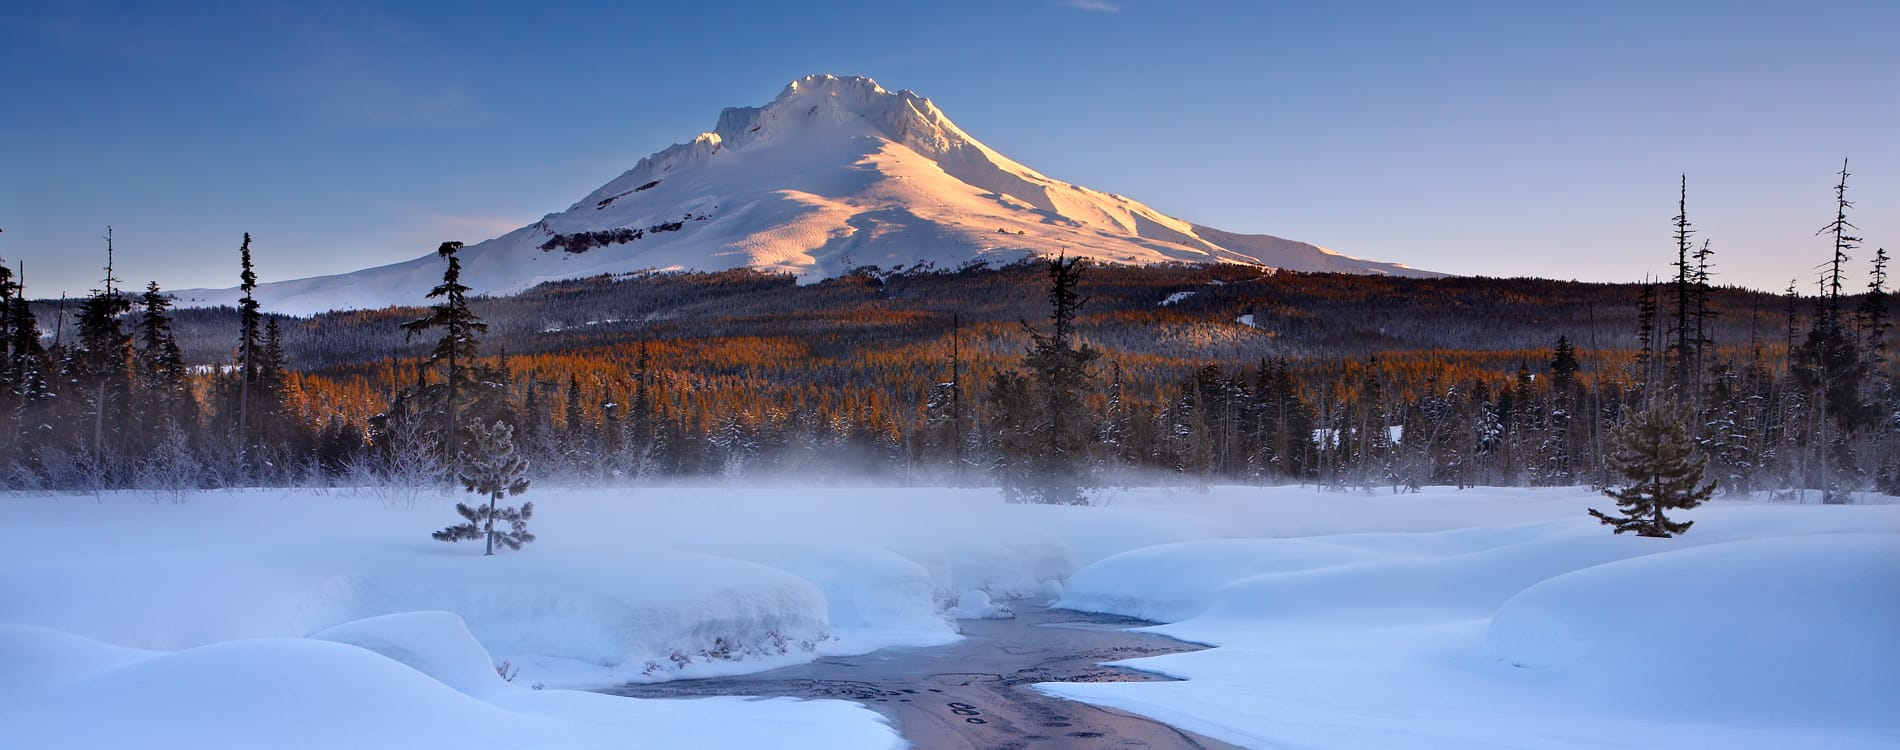 Mount Hood, OR - Winter View of Mount Hood